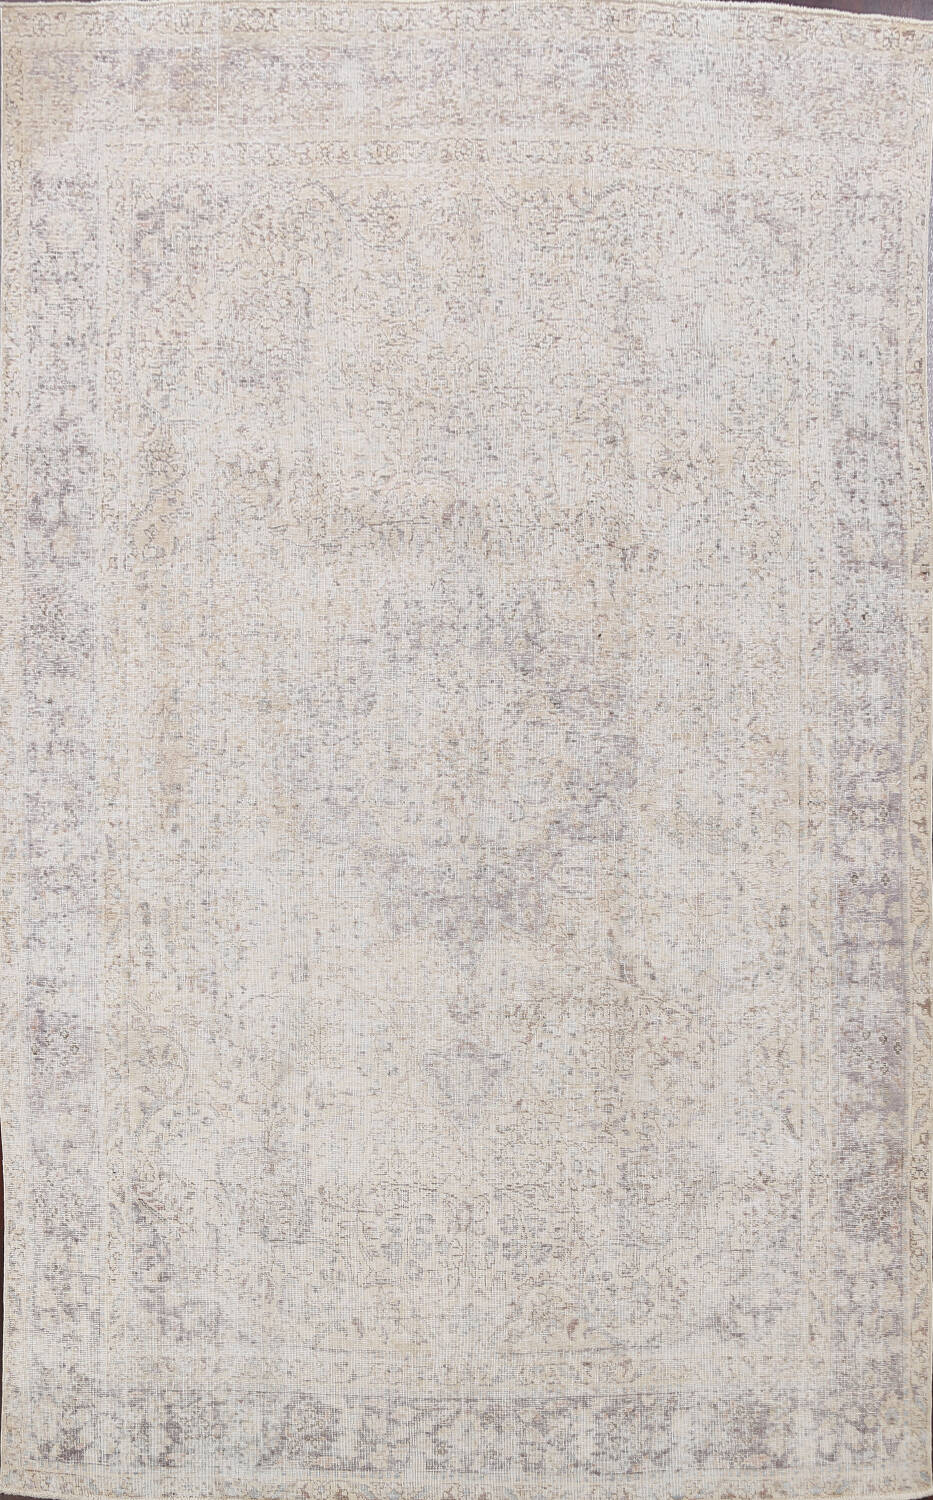 Muted Distressed Tabriz Persian Area Rug 8x11 image 1